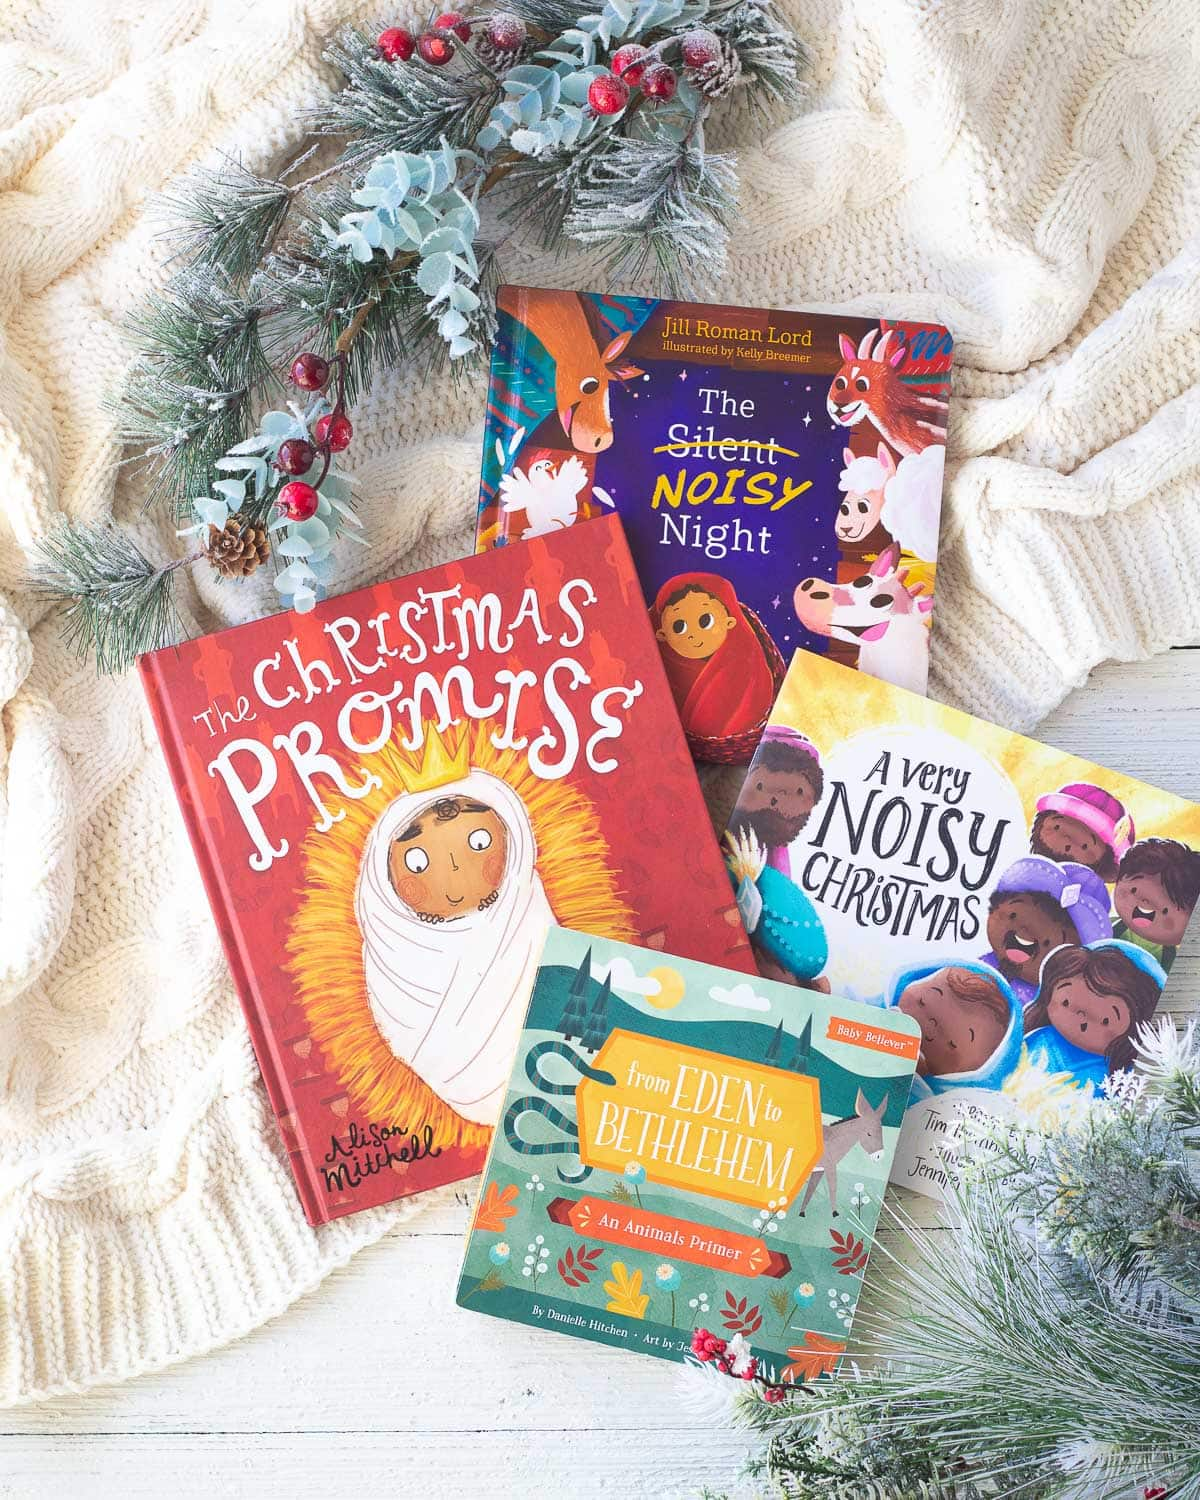 Several Christian Nativity books for reading to kids and babies at Christmas on a wooden surface with faux pine branches around them.